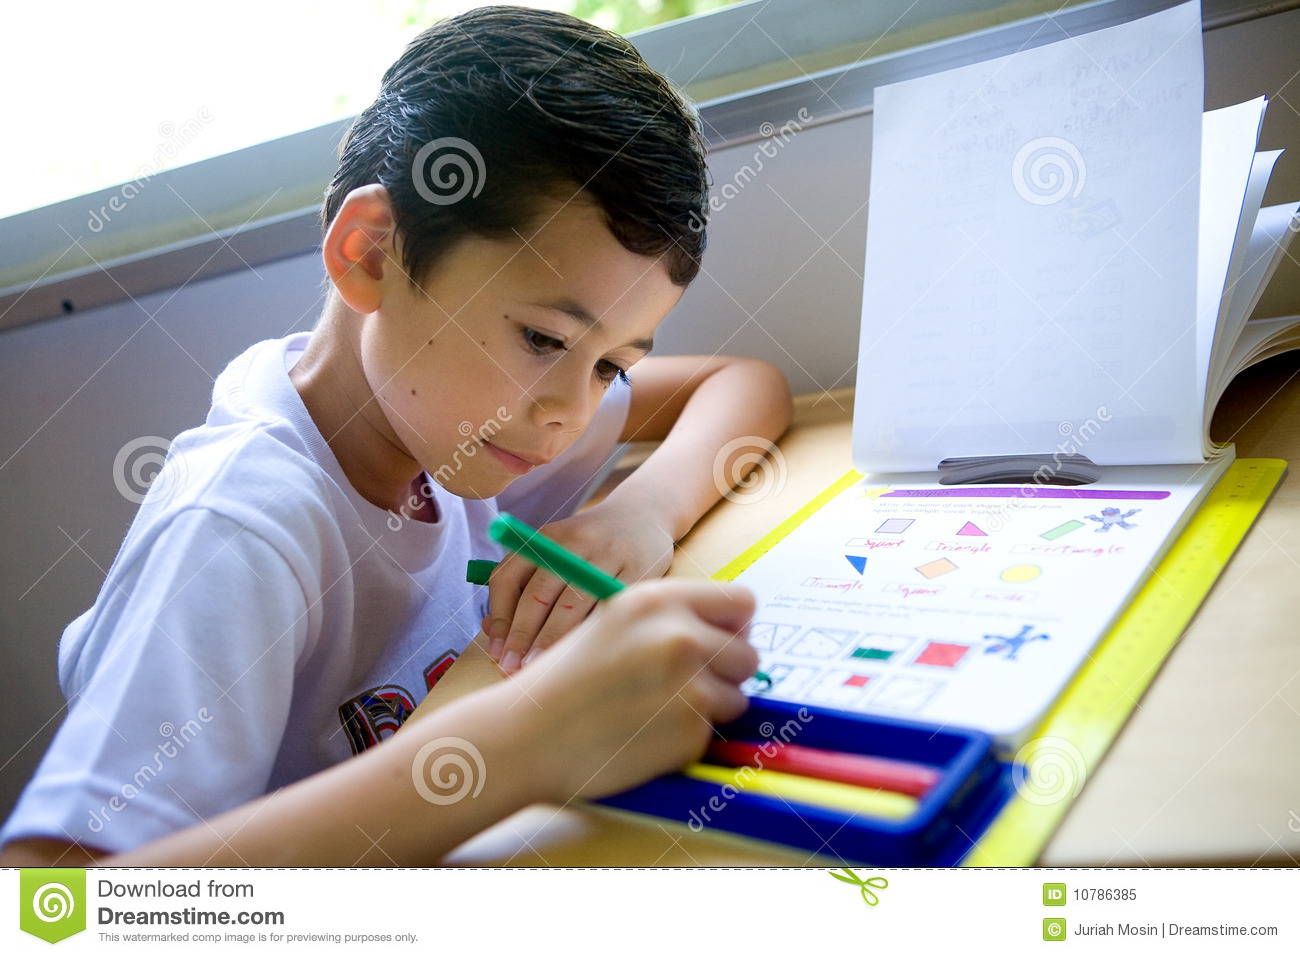 https://thumbs.dreamstime.com/z/boy-engross-doing-his-math-coloring-homework-10786385.jpg